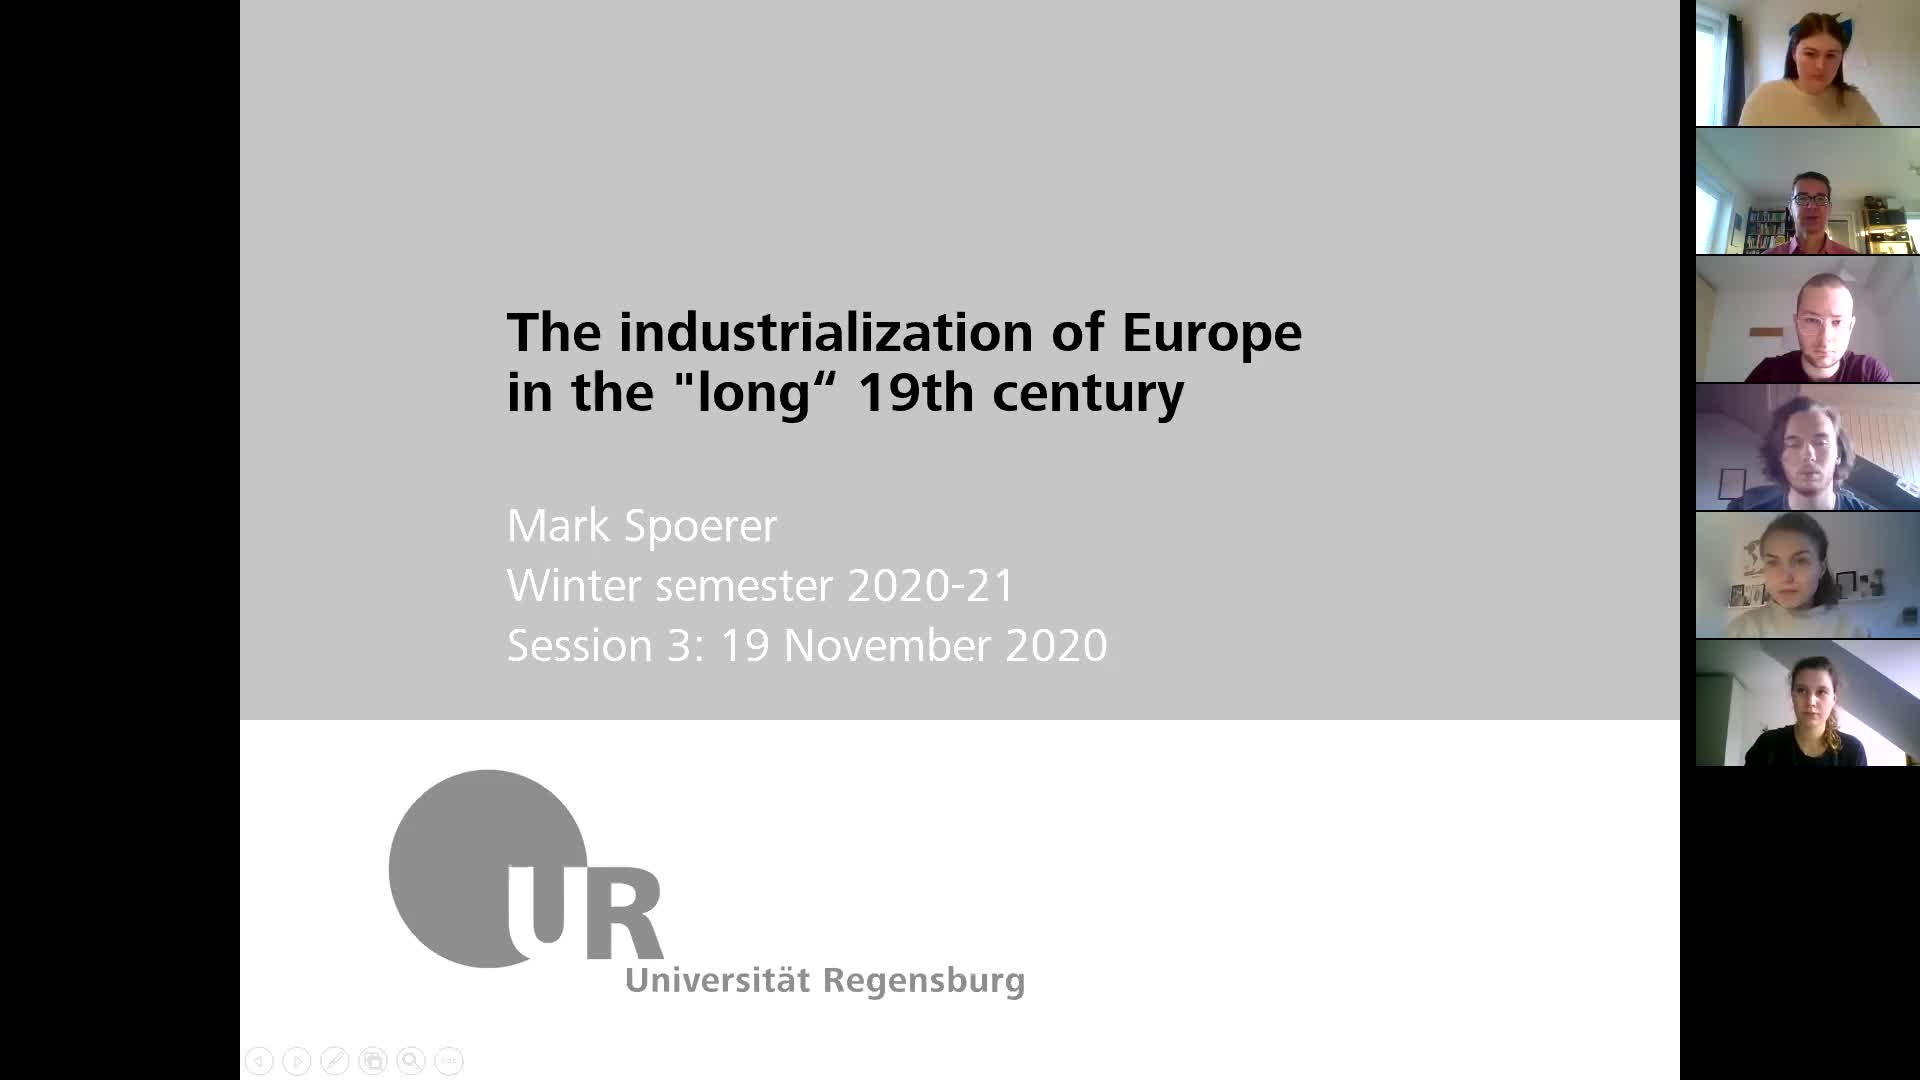 Industrialization - Q&A 3